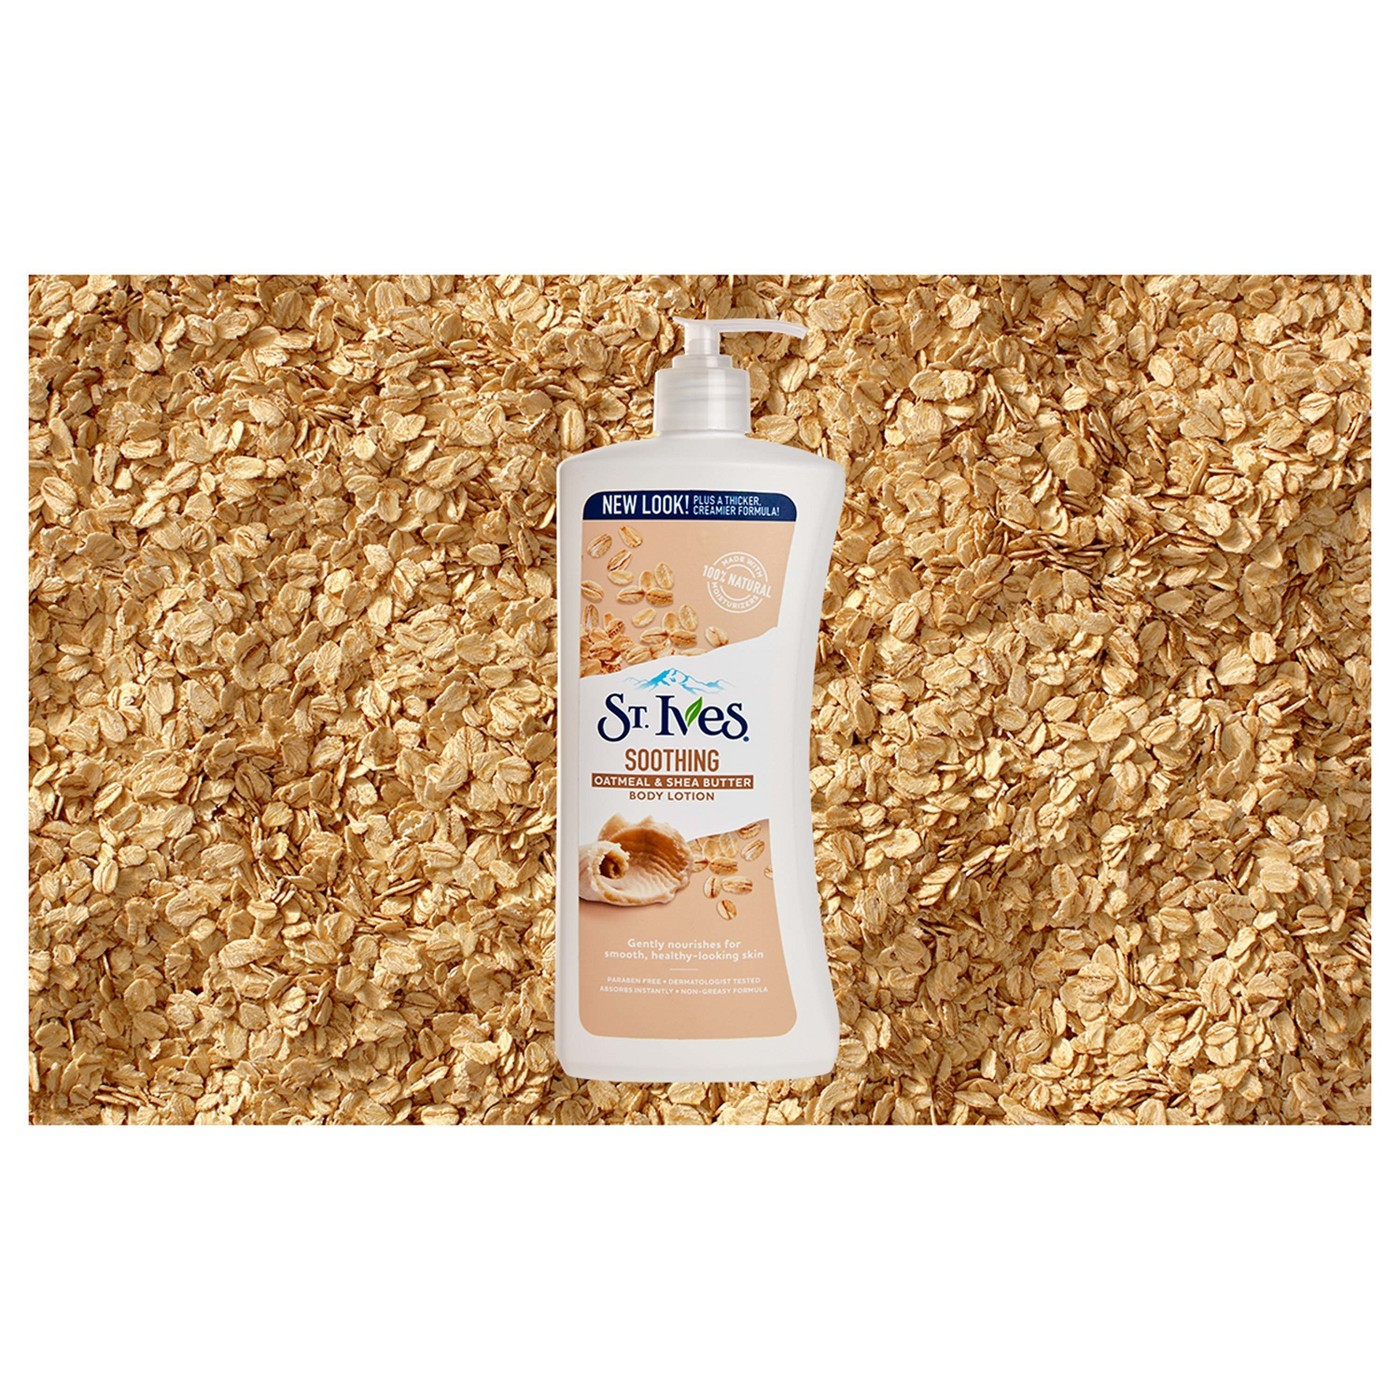 St. Ives Nourish and Soothe Oatmeal and Shea Butter Body Lotion 21 oz - image 5 of 7